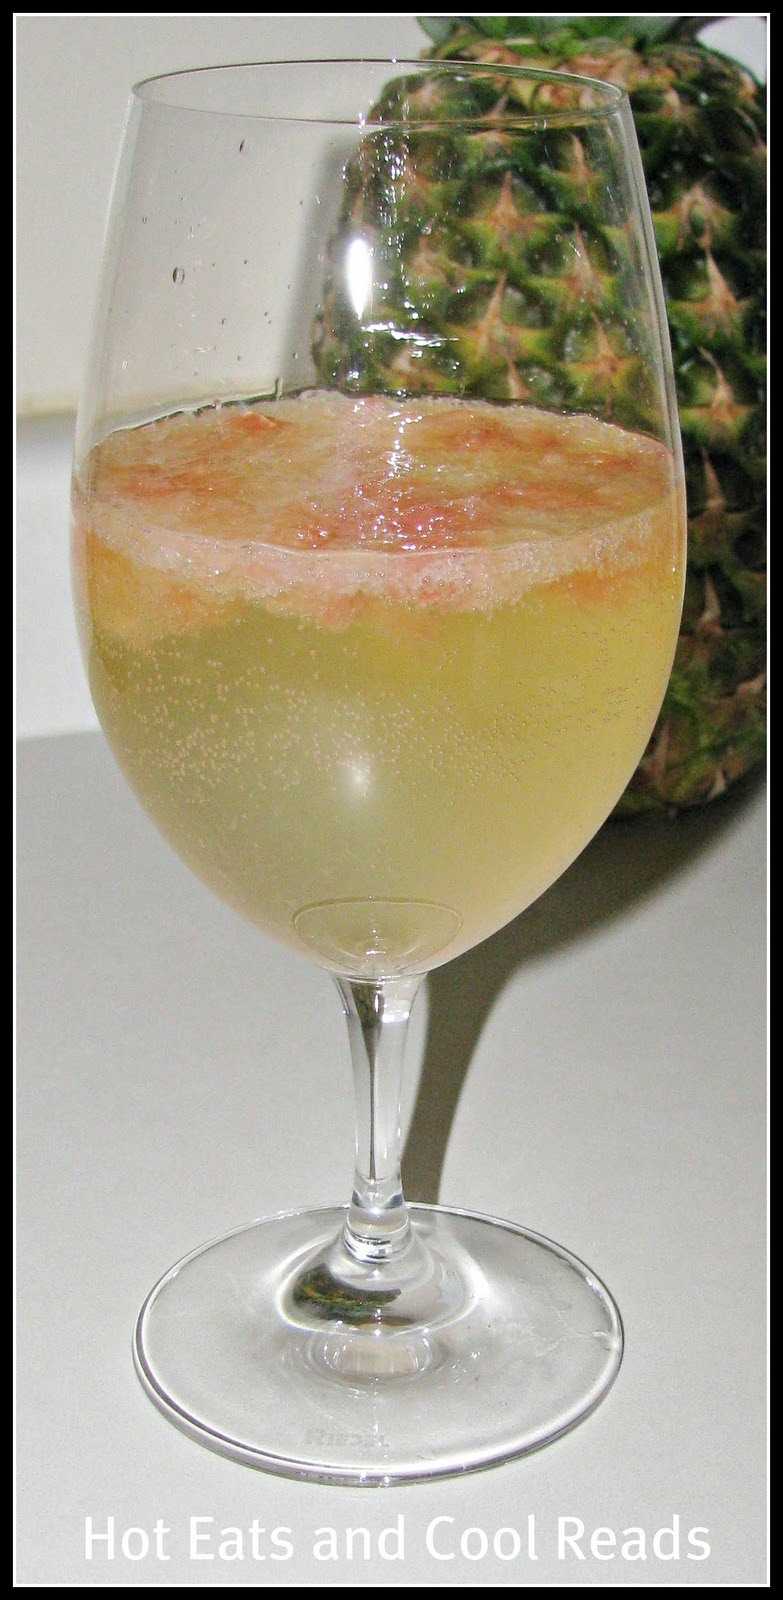 Hot Eats and Cool Reads: Moscato D'asti with Grapefruit Recipe